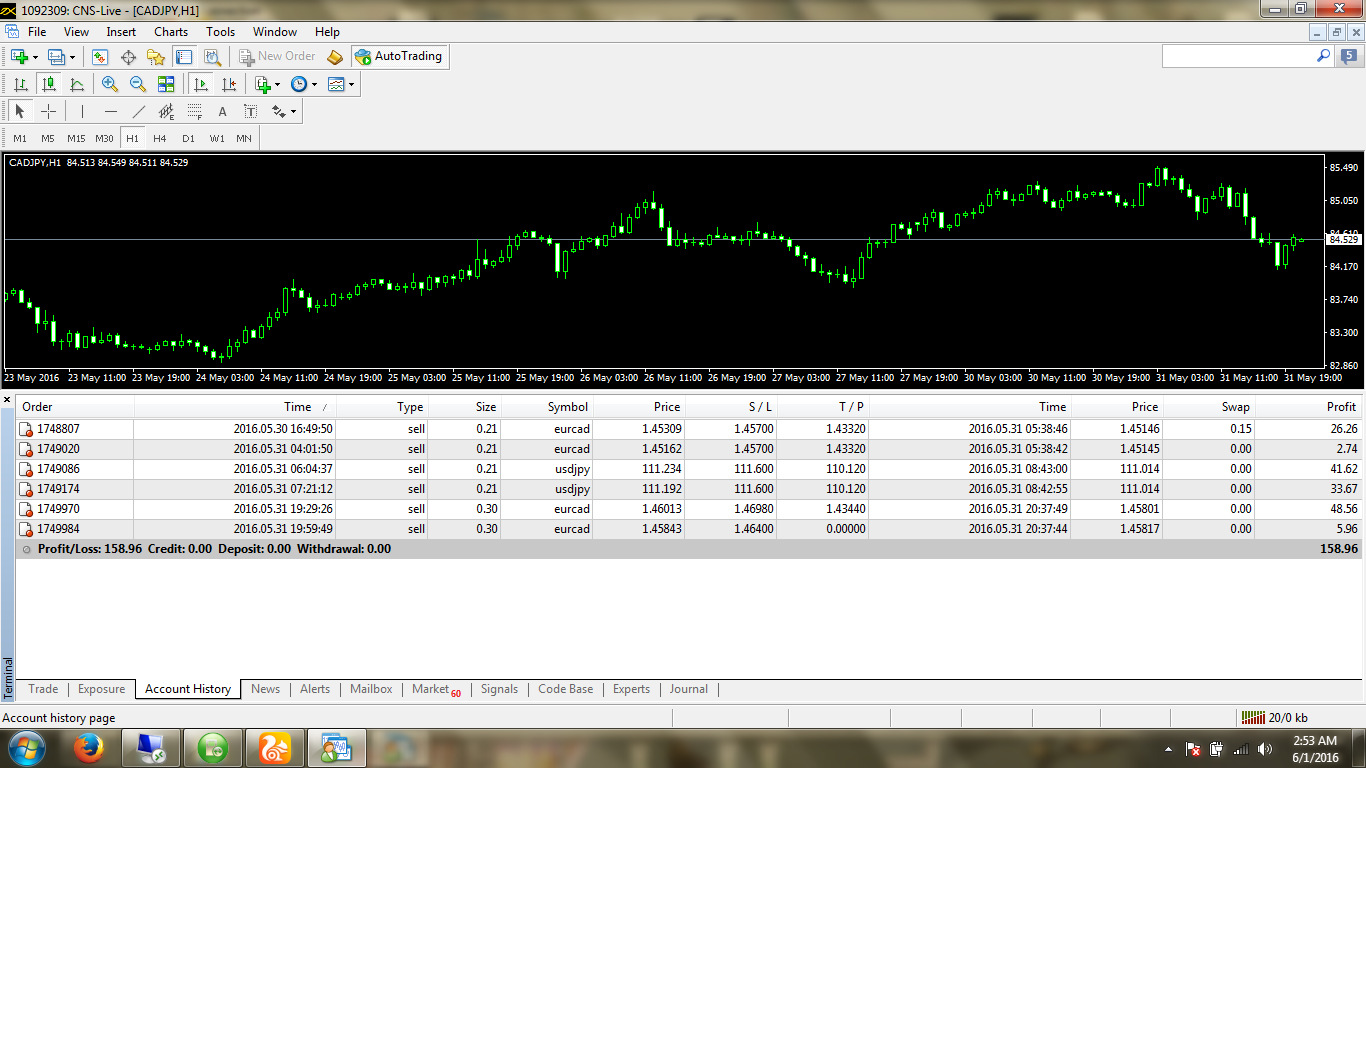 yesterday profit 150$.